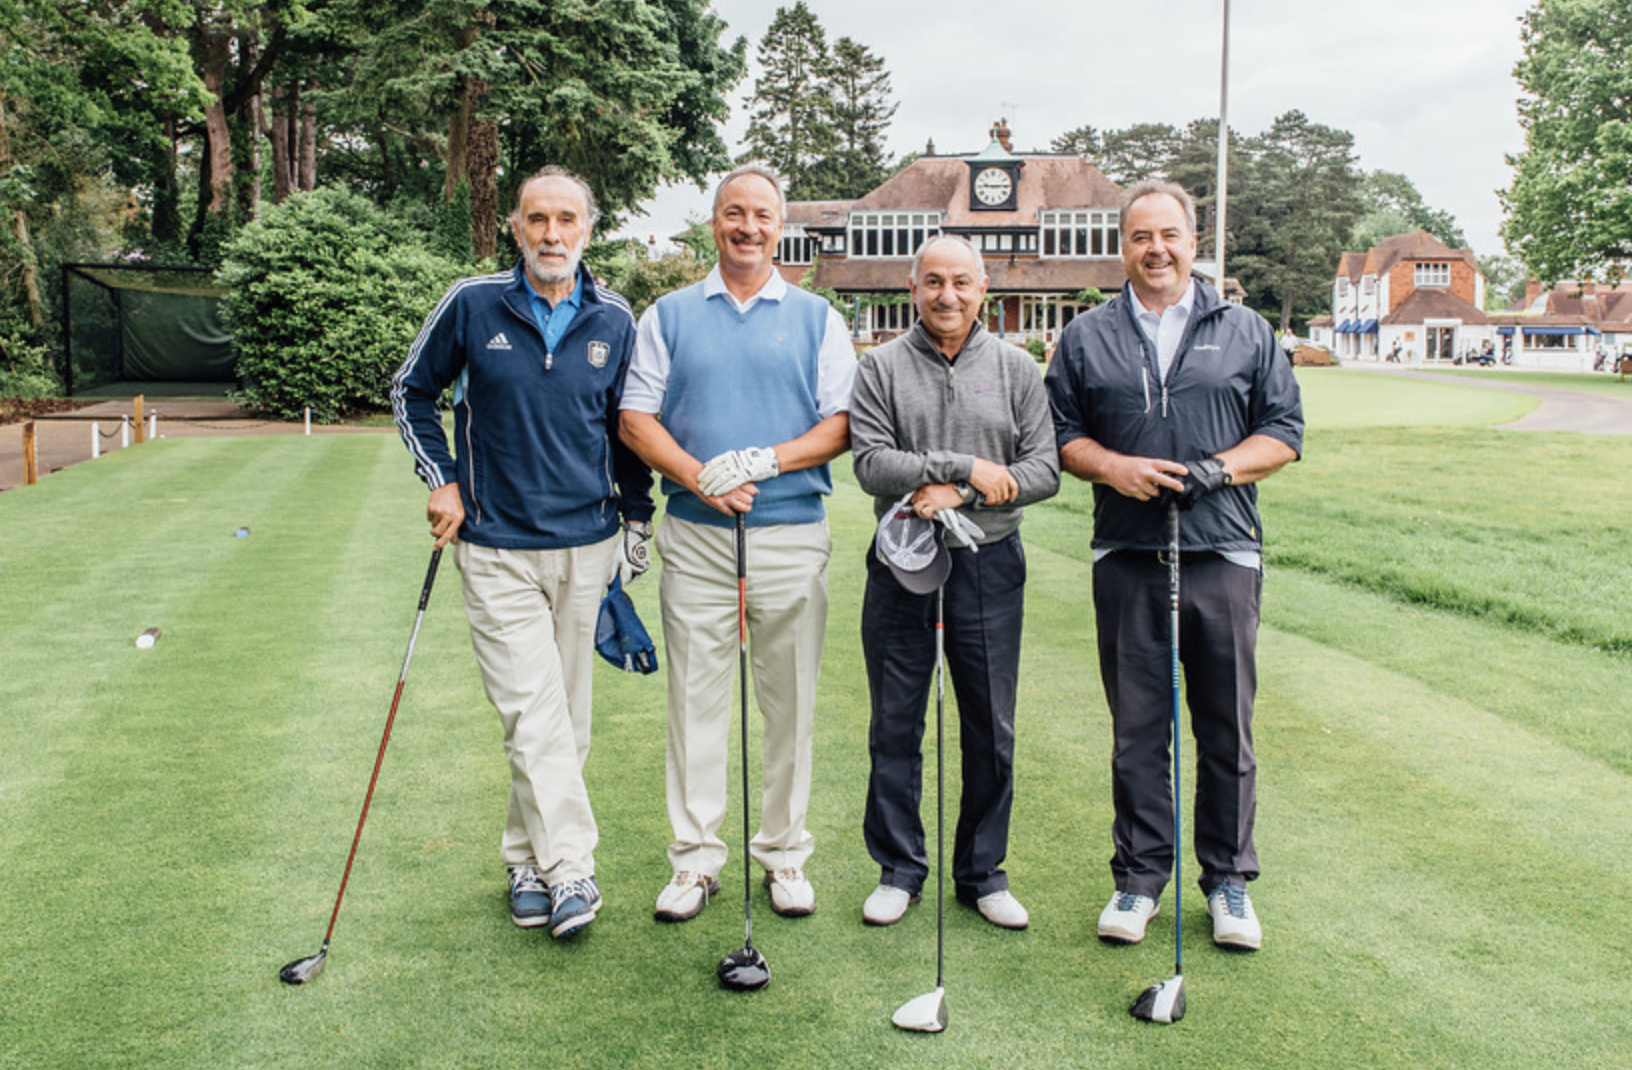 The Spurs Legends V's The 125 Club at Sunningdale Golf Club